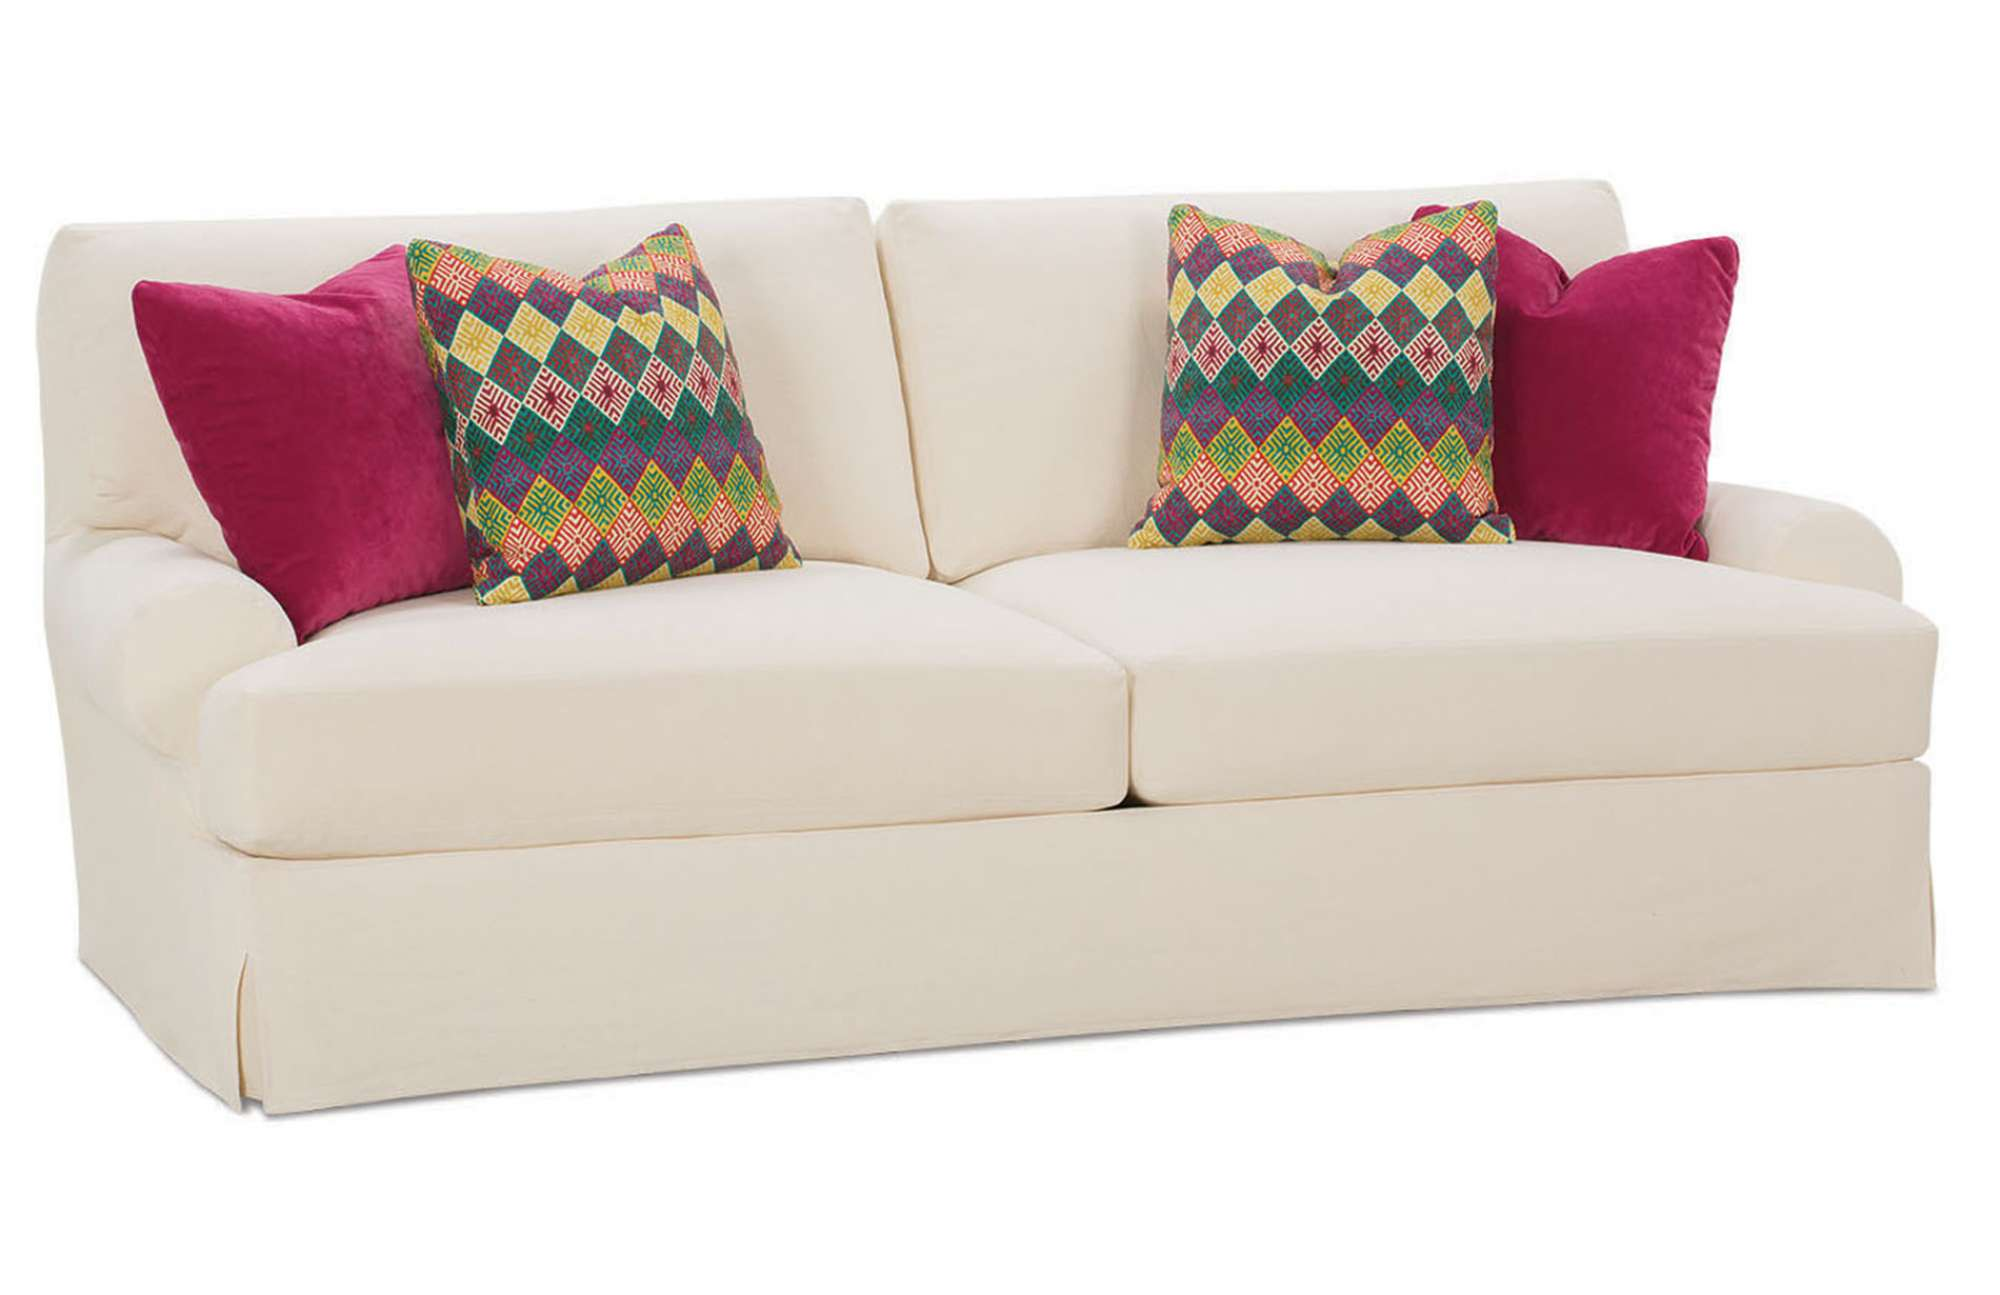 t sofa covers flowered slipcovers shaped  thesofa